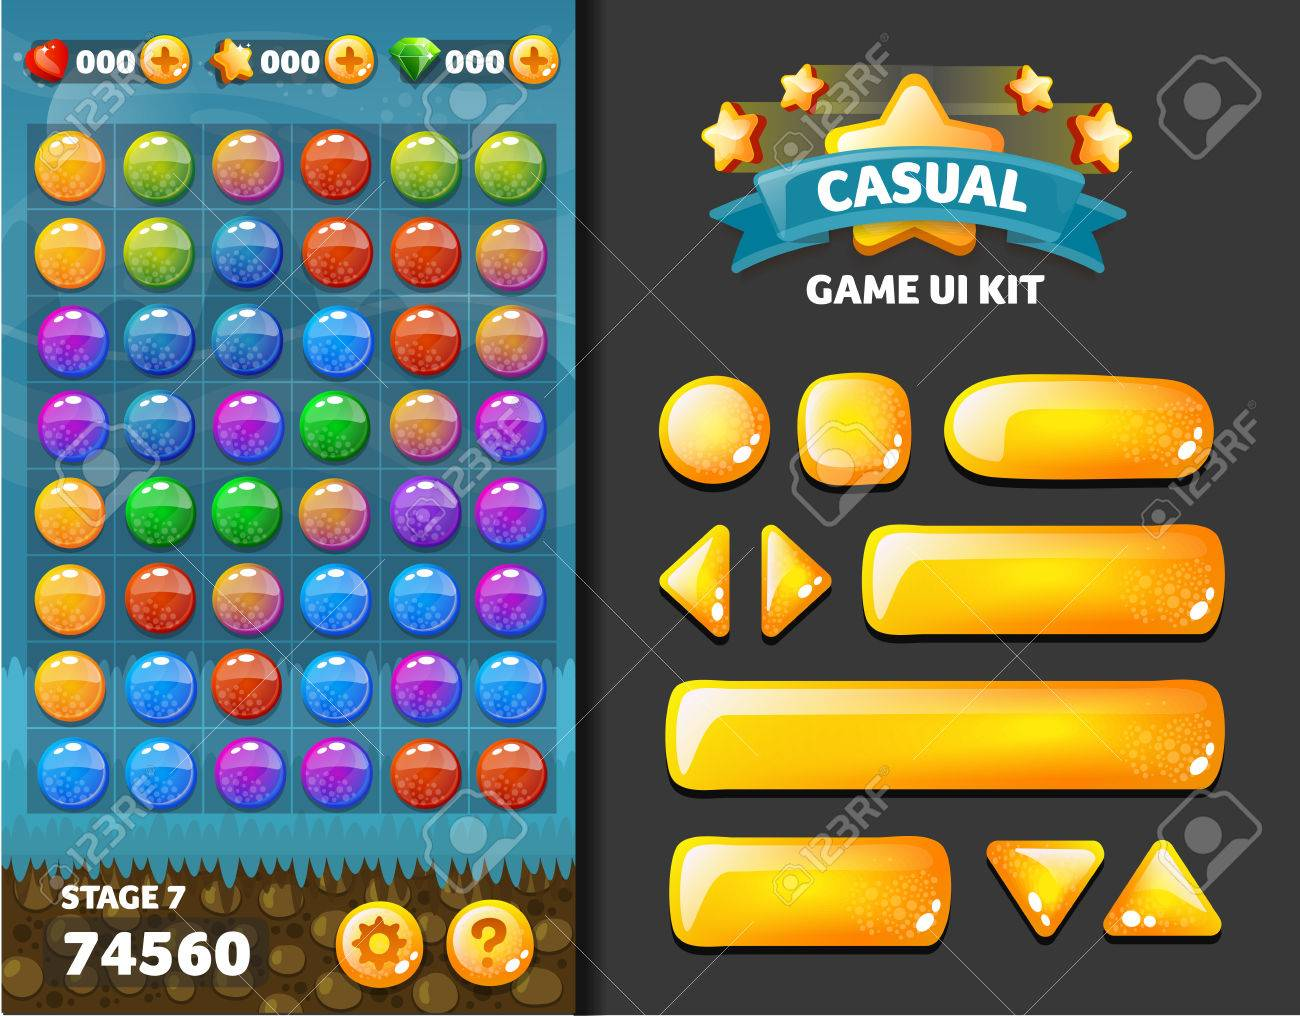 background and buttons for mobile game development, ui design